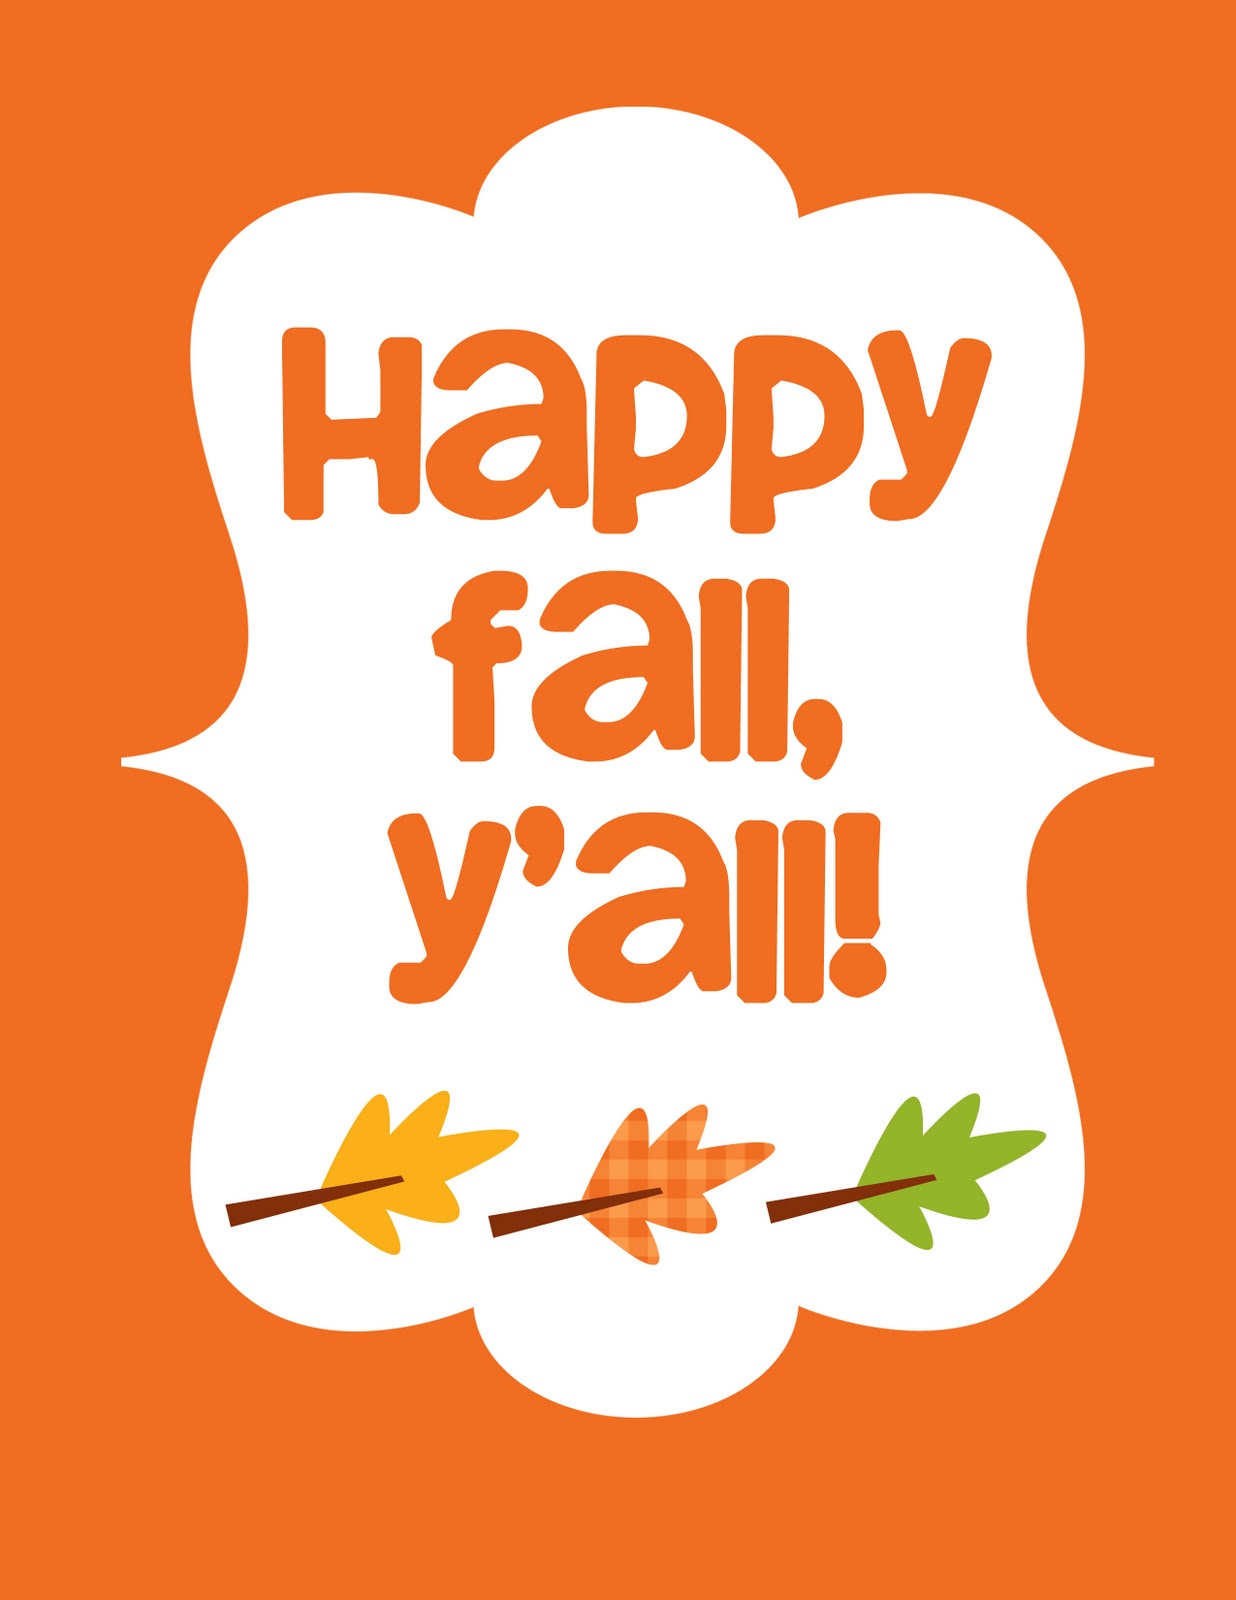 graphic about Happy Fall Yall Printable identify Impressed Whims: Pleased Tumble, Yall! (Free of charge Printable)